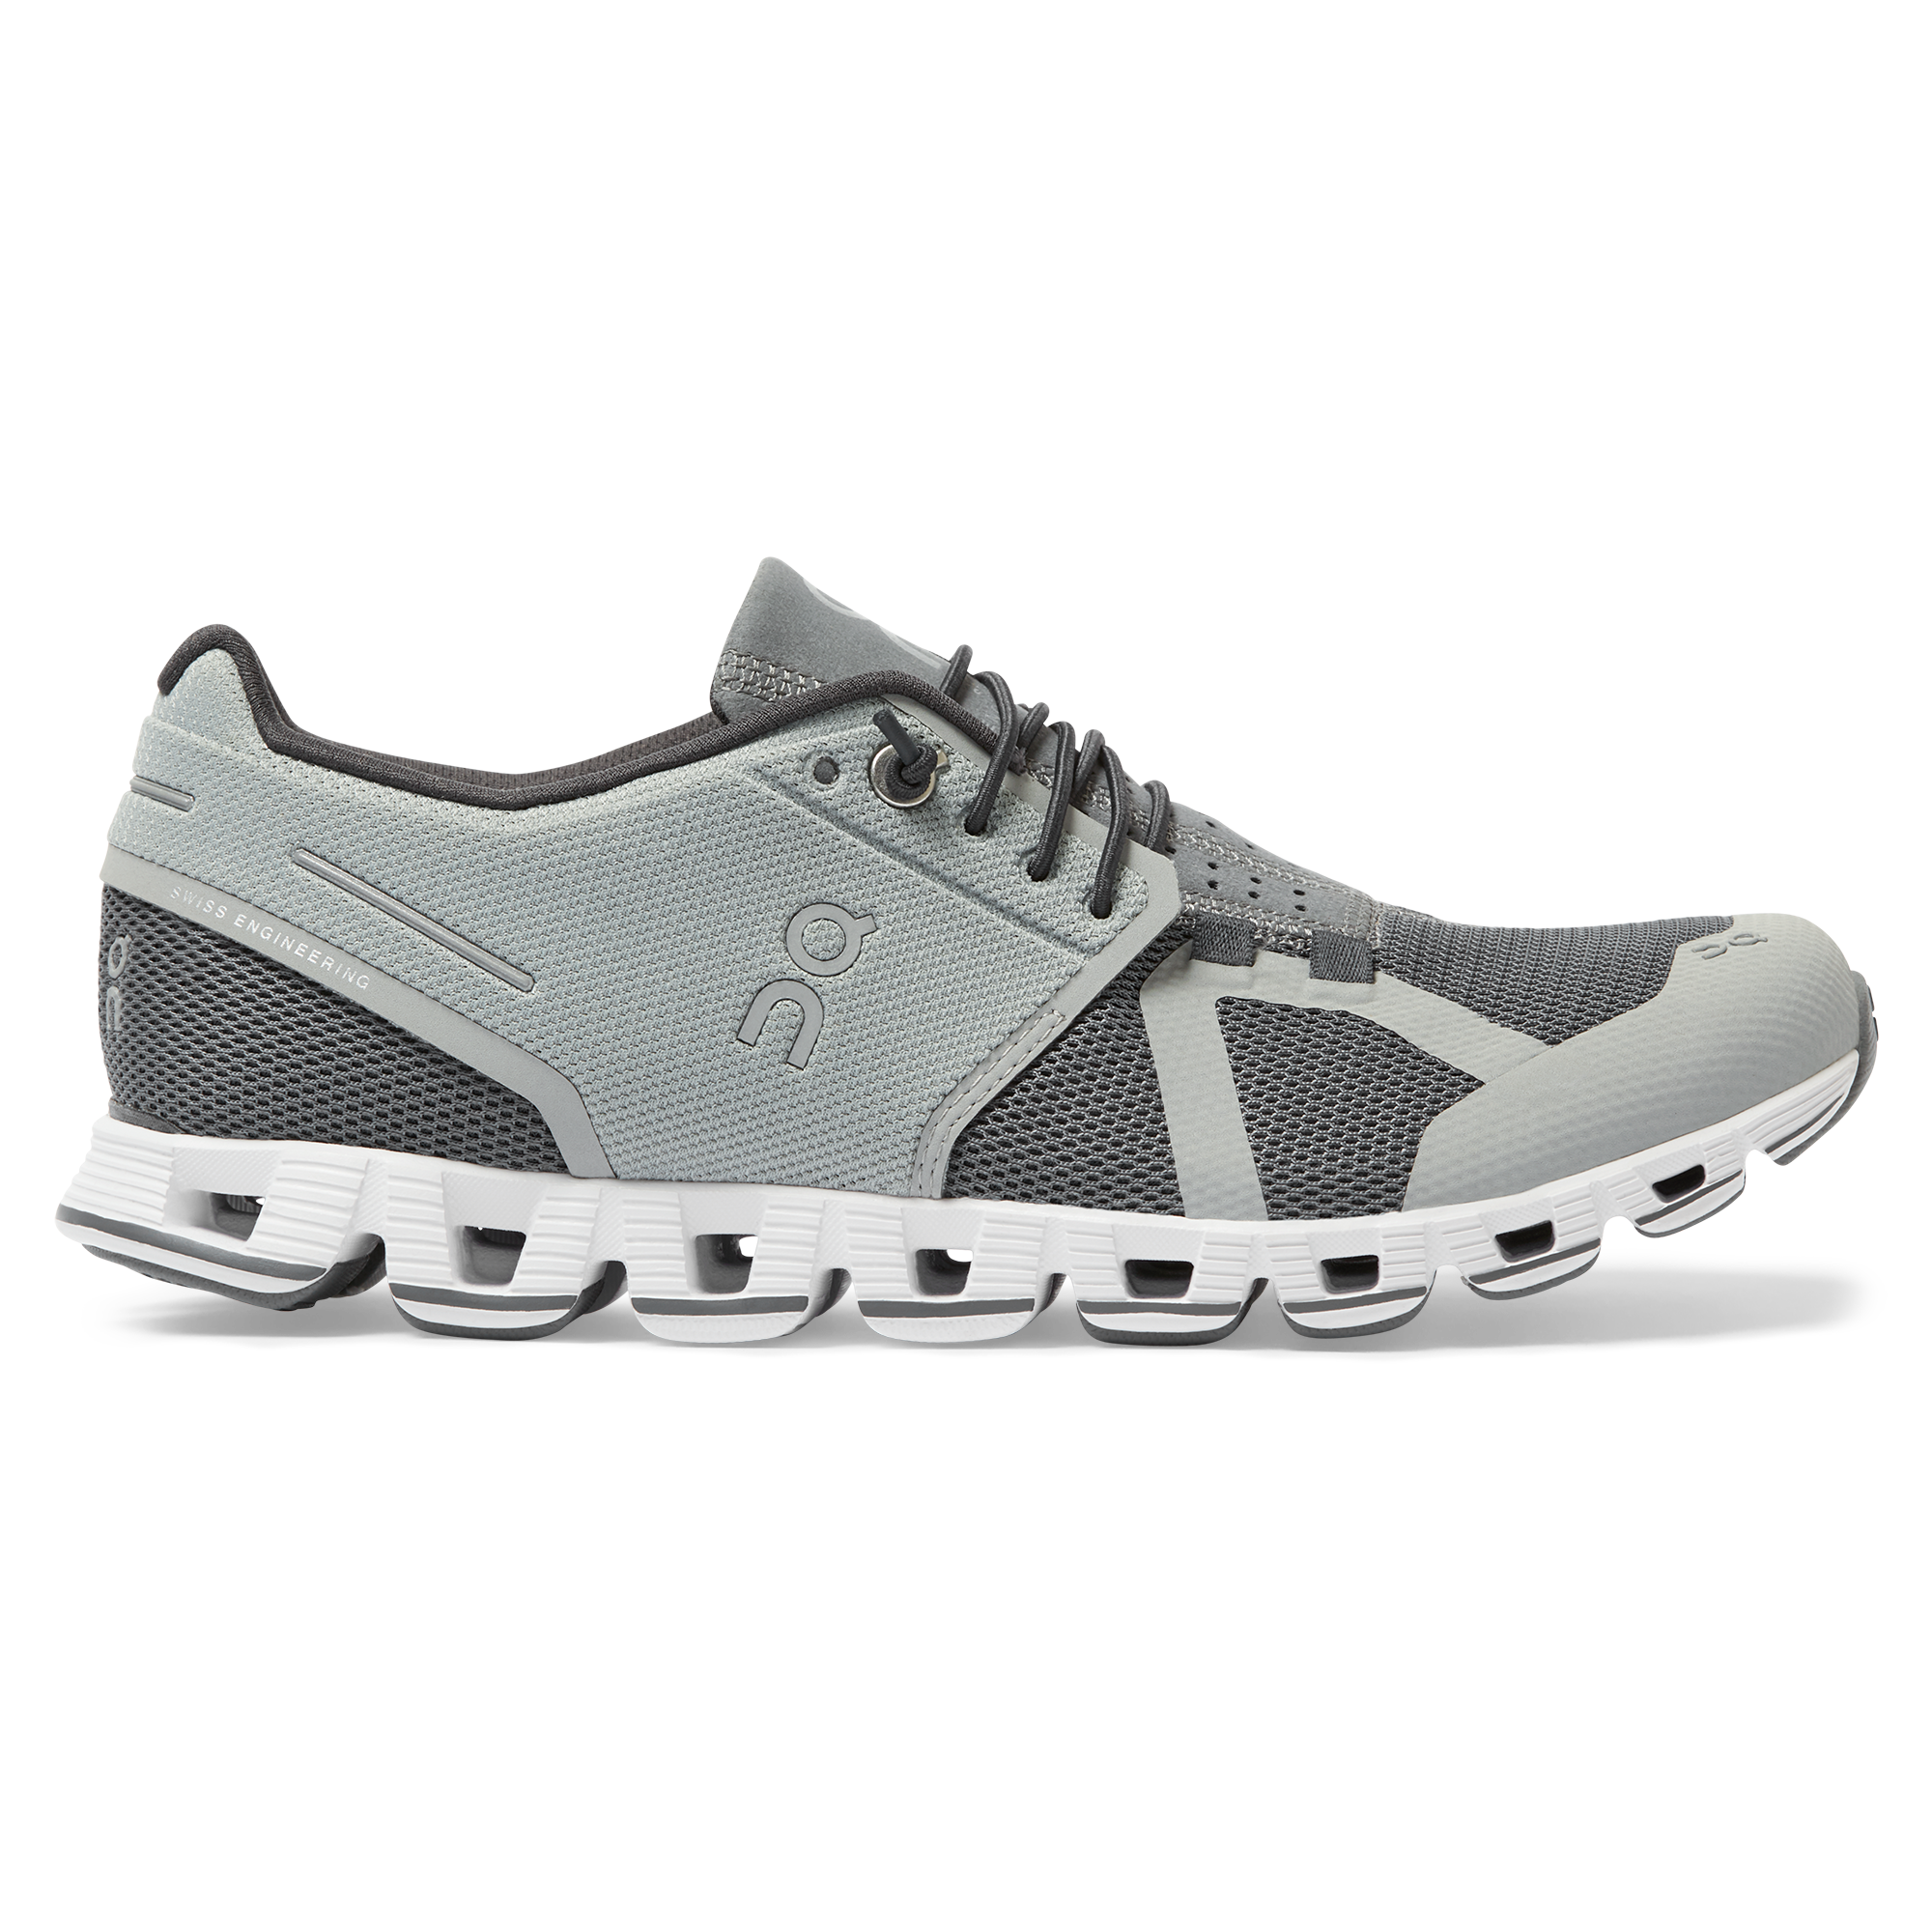 Cloud the lightweight shoe for everyday performance | On